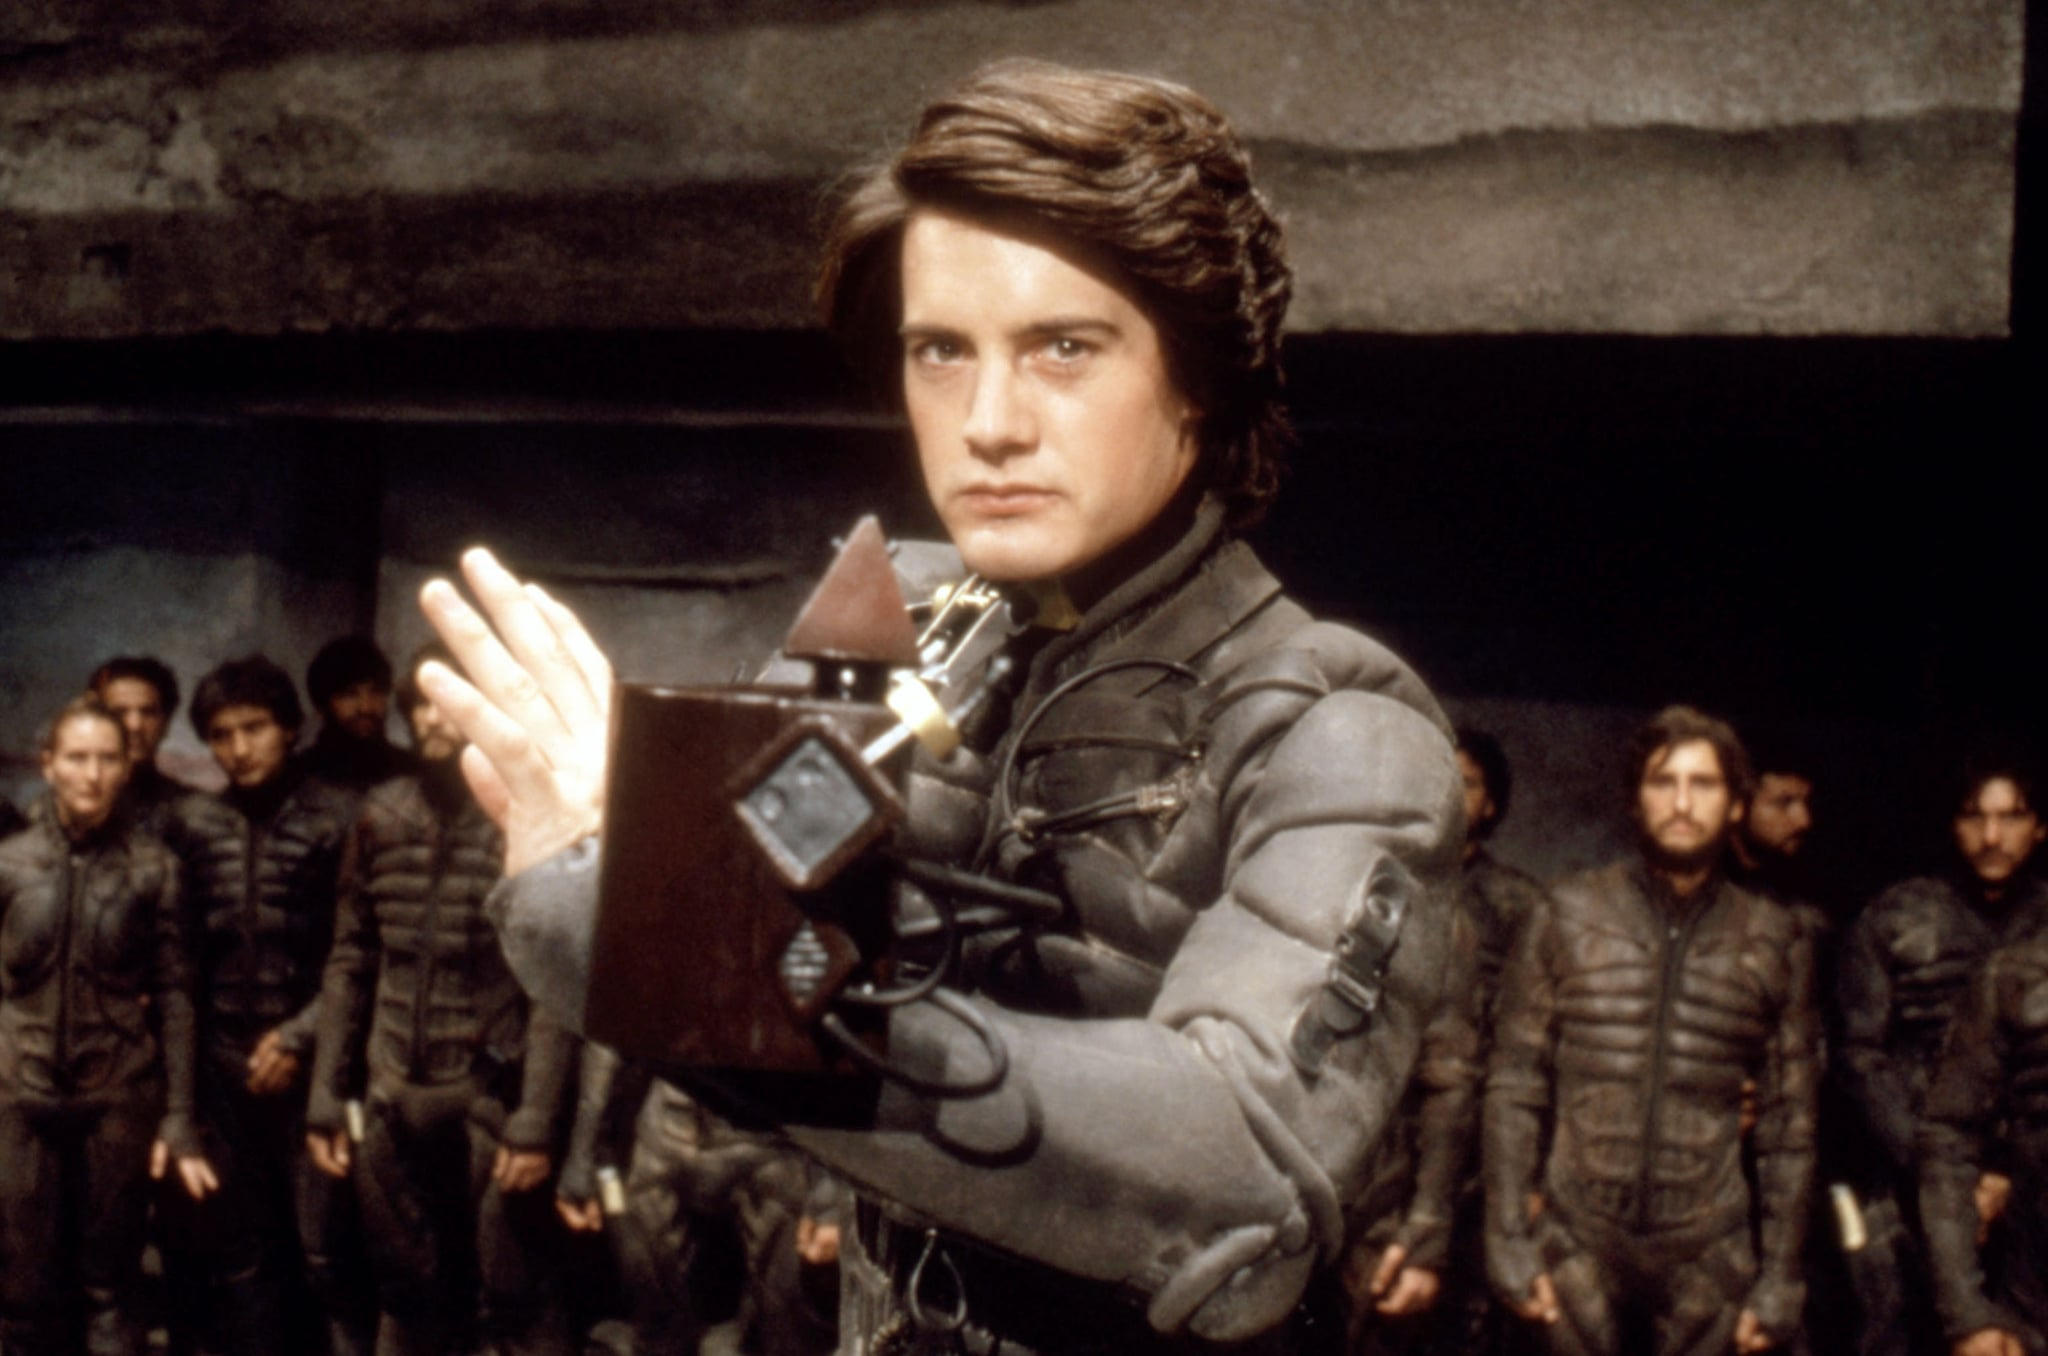 DUNE, Kyle MacLachlan, 1984. Universal/courtesy Everett Collection